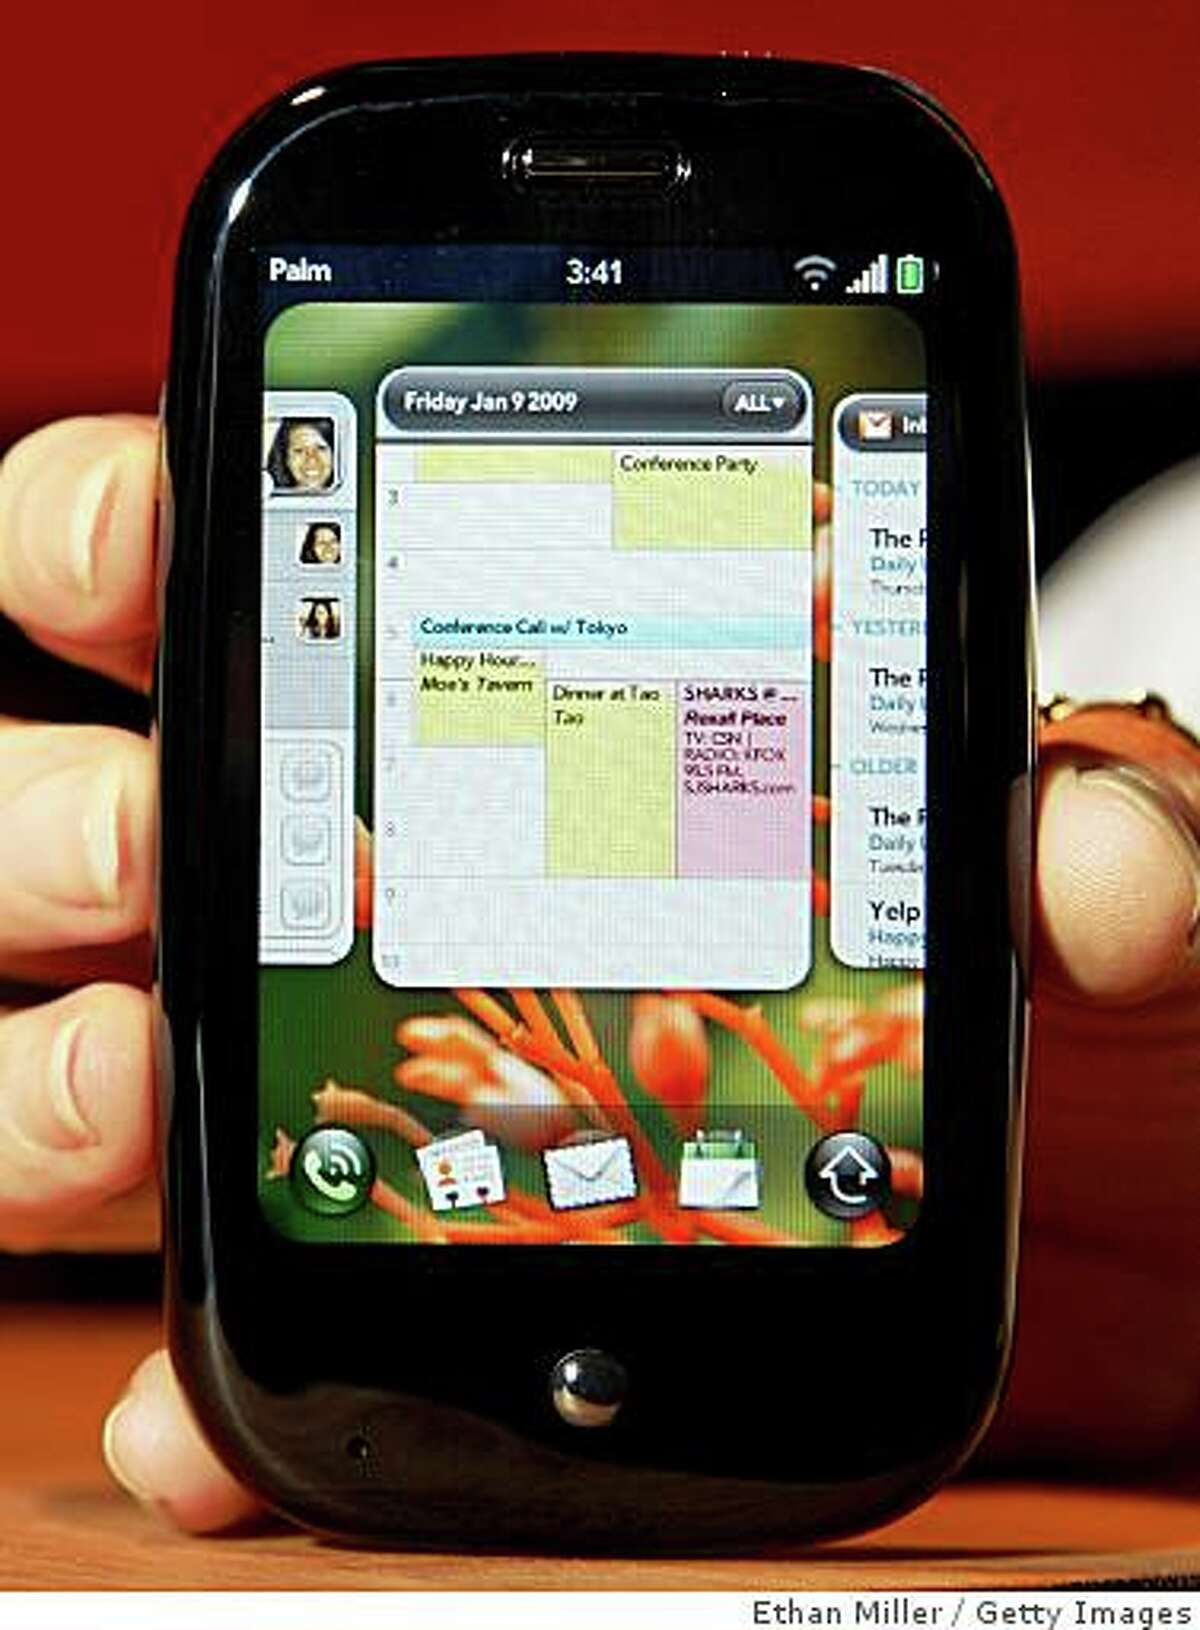 Palm Pre likely to make its debut this monthLAS VEGAS - JANUARY 08: A new Palm Pre smartphone that runs on a new operating system called Palm webOS is displayed at the 2009 International Consumer Electronics Show at the Las Vegas Convention Center January 8, 2009 in Las Vegas, Nevada. The phone has been completely redesigned and features a slider QWERTY keyboard, 3.1 megapixel camera with flash, 8 GB of memory, Wi-Fi, GPS, Bluetooth, a removable battery and a touch screen